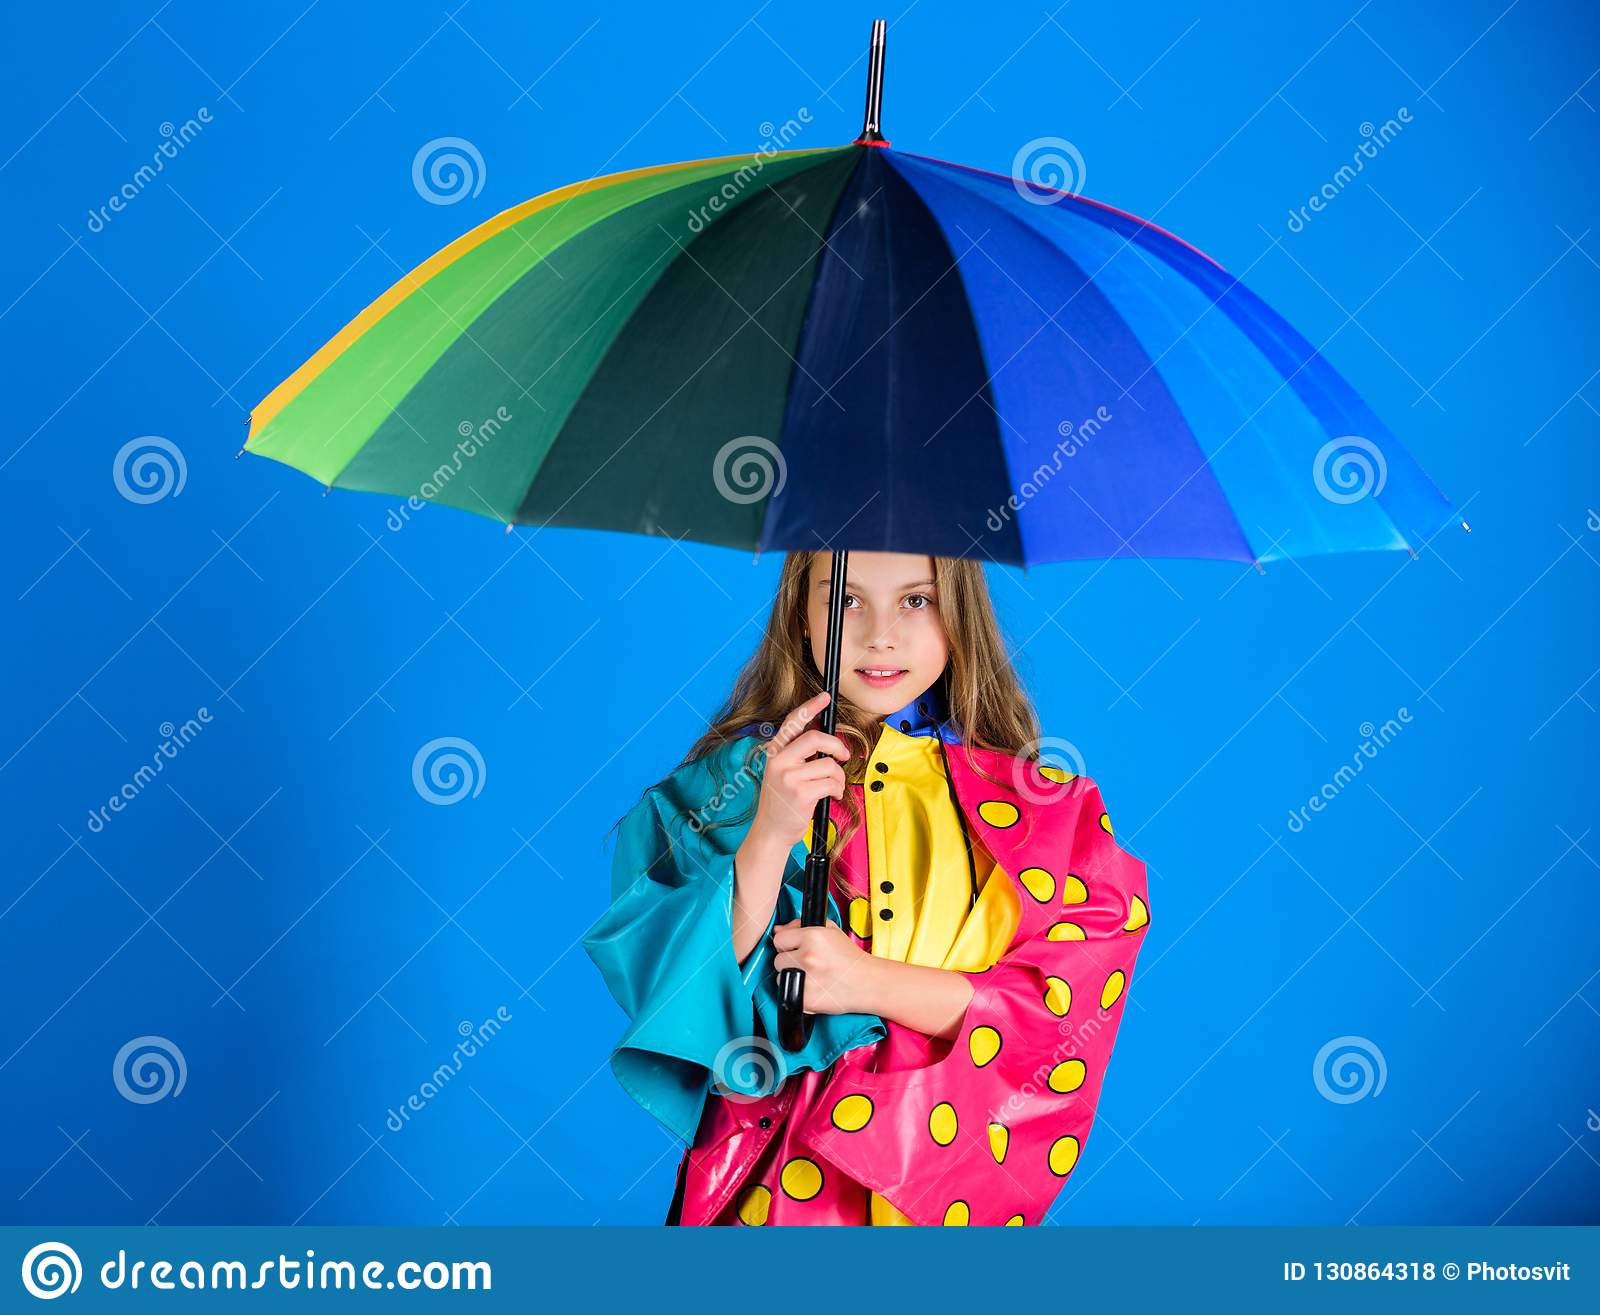 Waterproof accessories manufacture. Enjoy rainy weather with proper garments. Waterproof accessories make rainy day